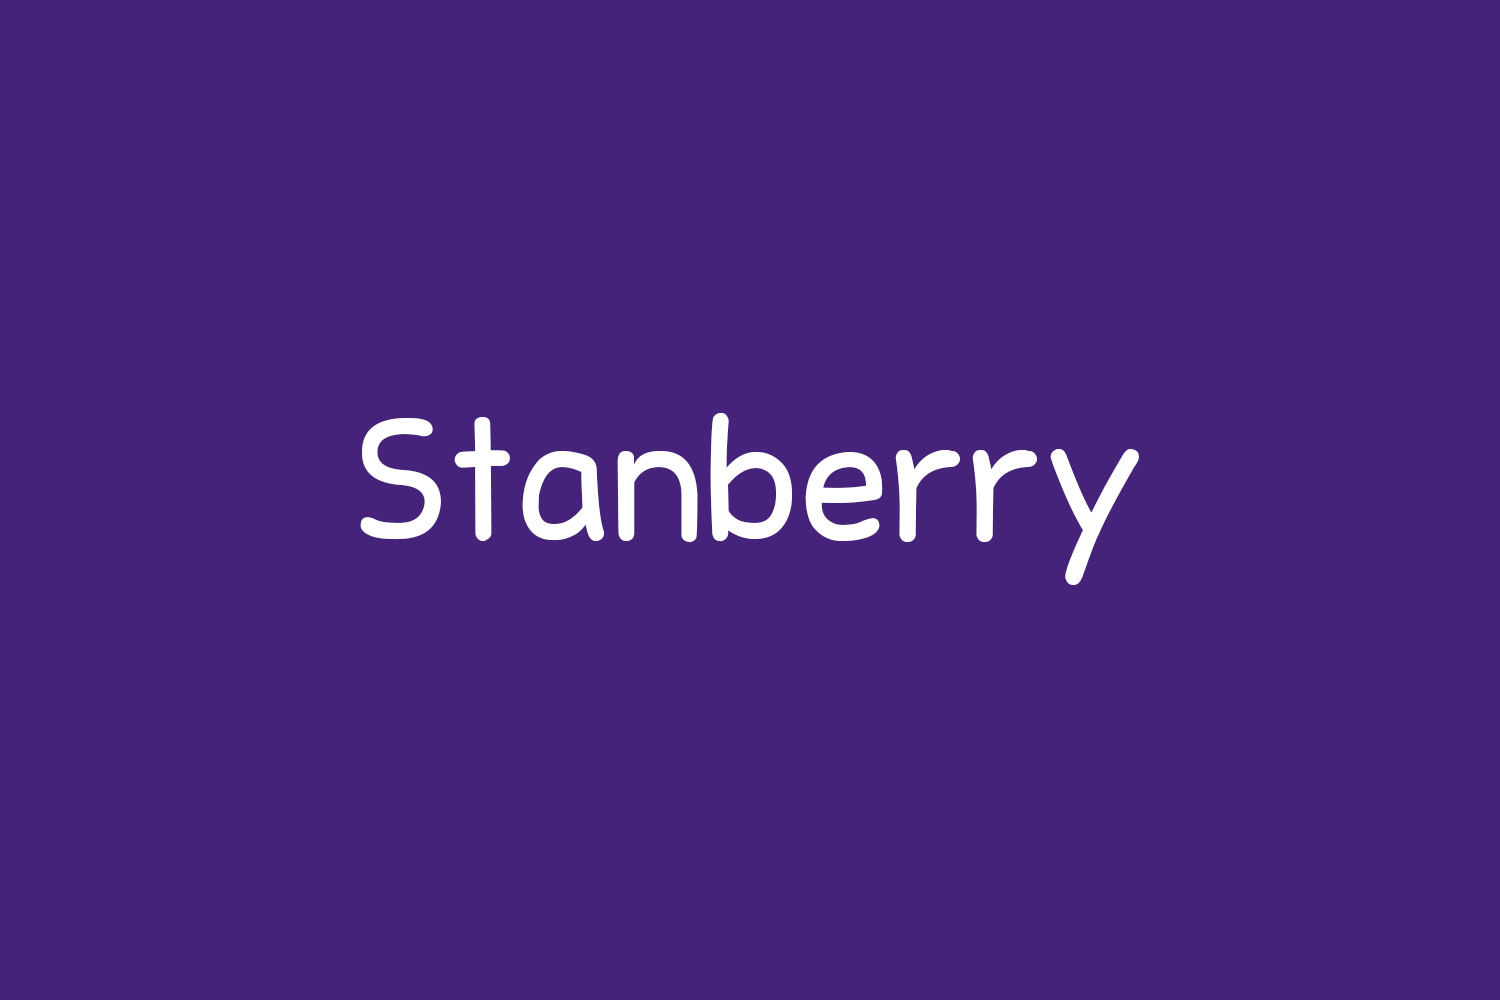 Stanberry Free Font